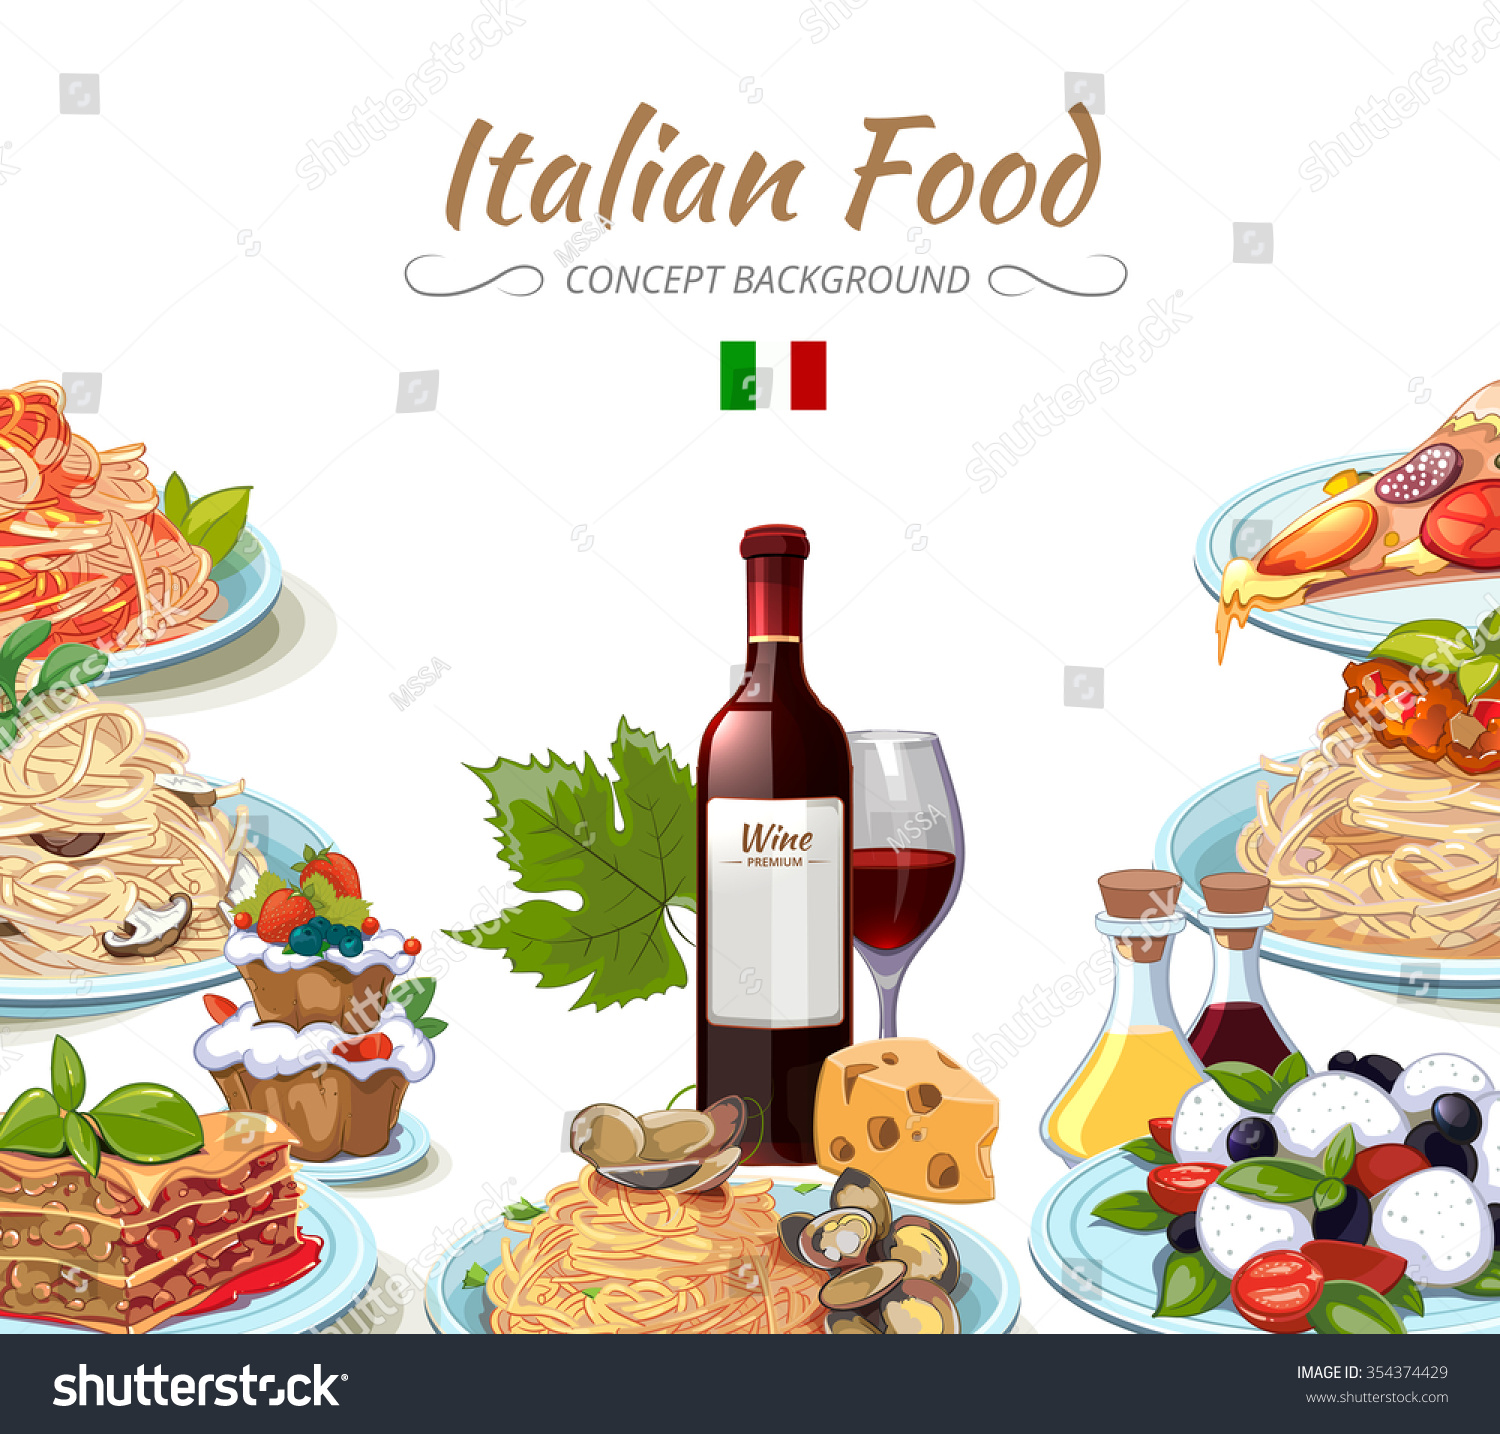 Italian cuisine food background cooking lunch stock vector for Italian cuisine